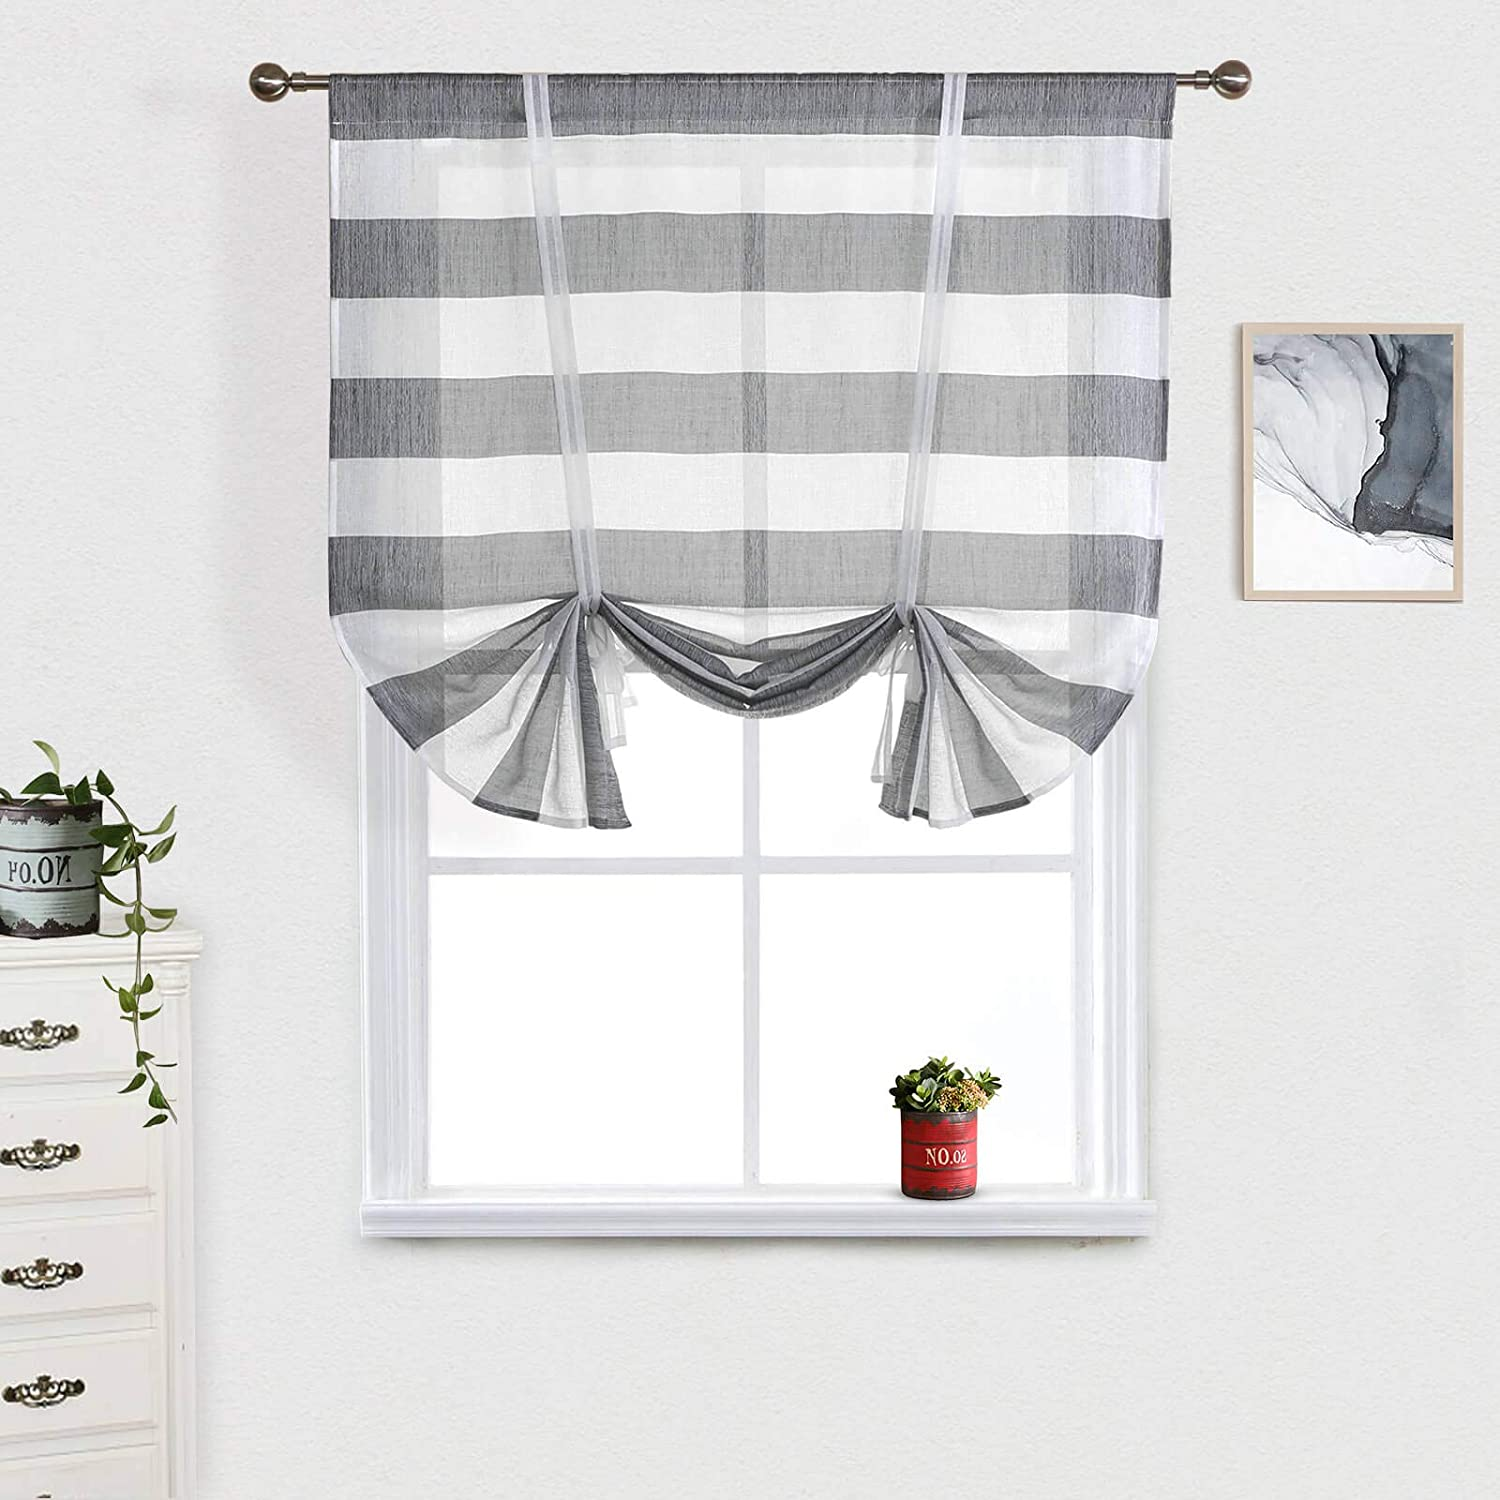 Amazon Com Striped Bathroomtie Up Curtain Grey And White Rugby Stripes Kitchen Valance For Window Light Gray Semi Sheer Balloon Shades Curtains Modern Famhouse Living Room Bedroom Small Windows 46x63 Inch